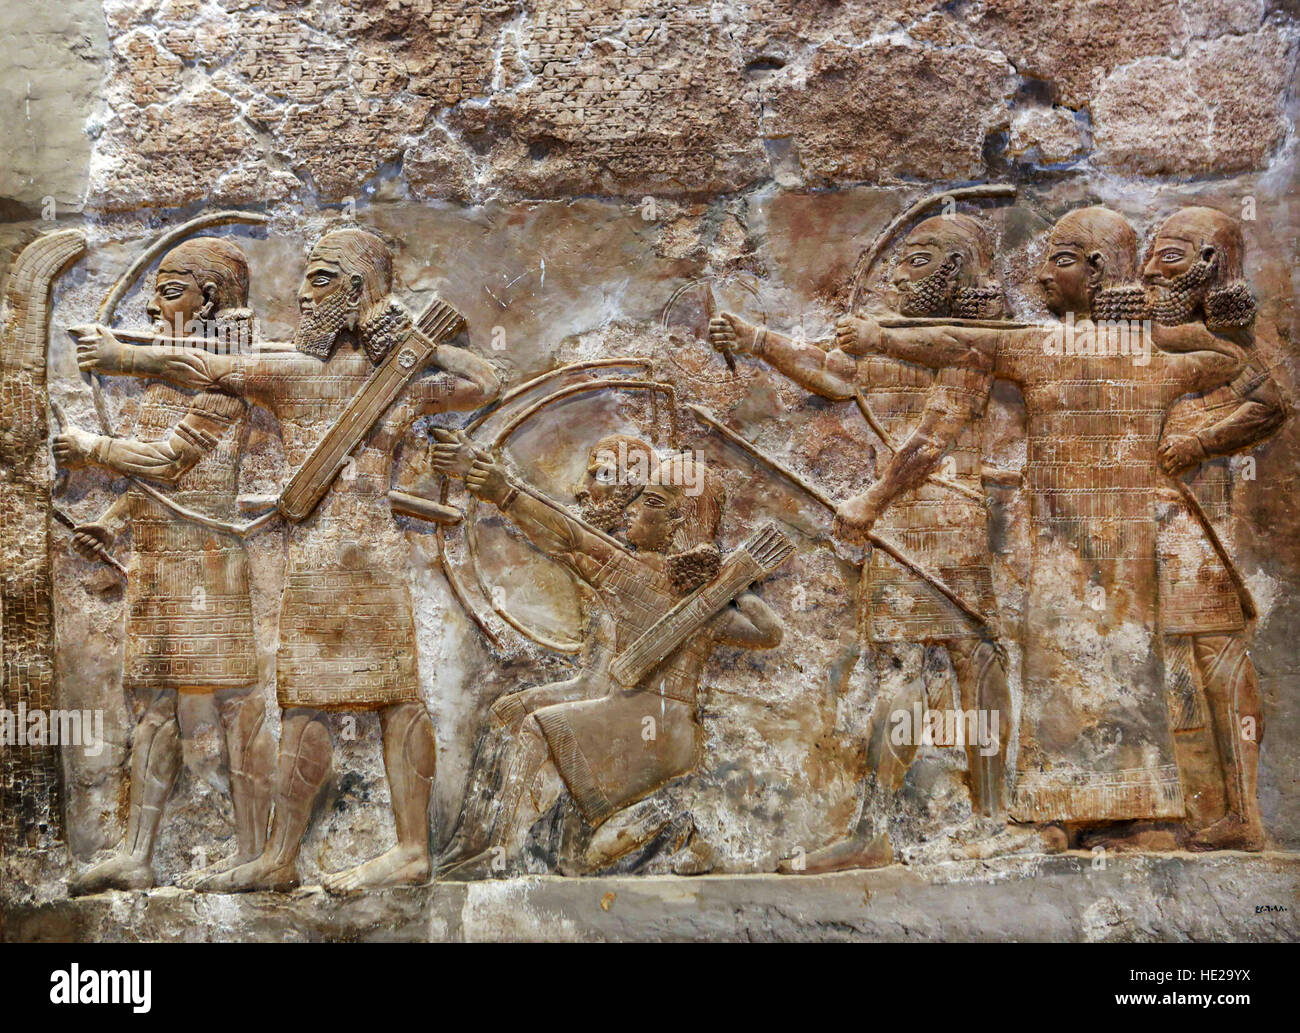 6001. ASSYRIAN ARMY ARCHERS CONQUERING A FORTIFIED CITY .  RELIEF FROM NIMRUD, C. 865 B.C. - Stock Image